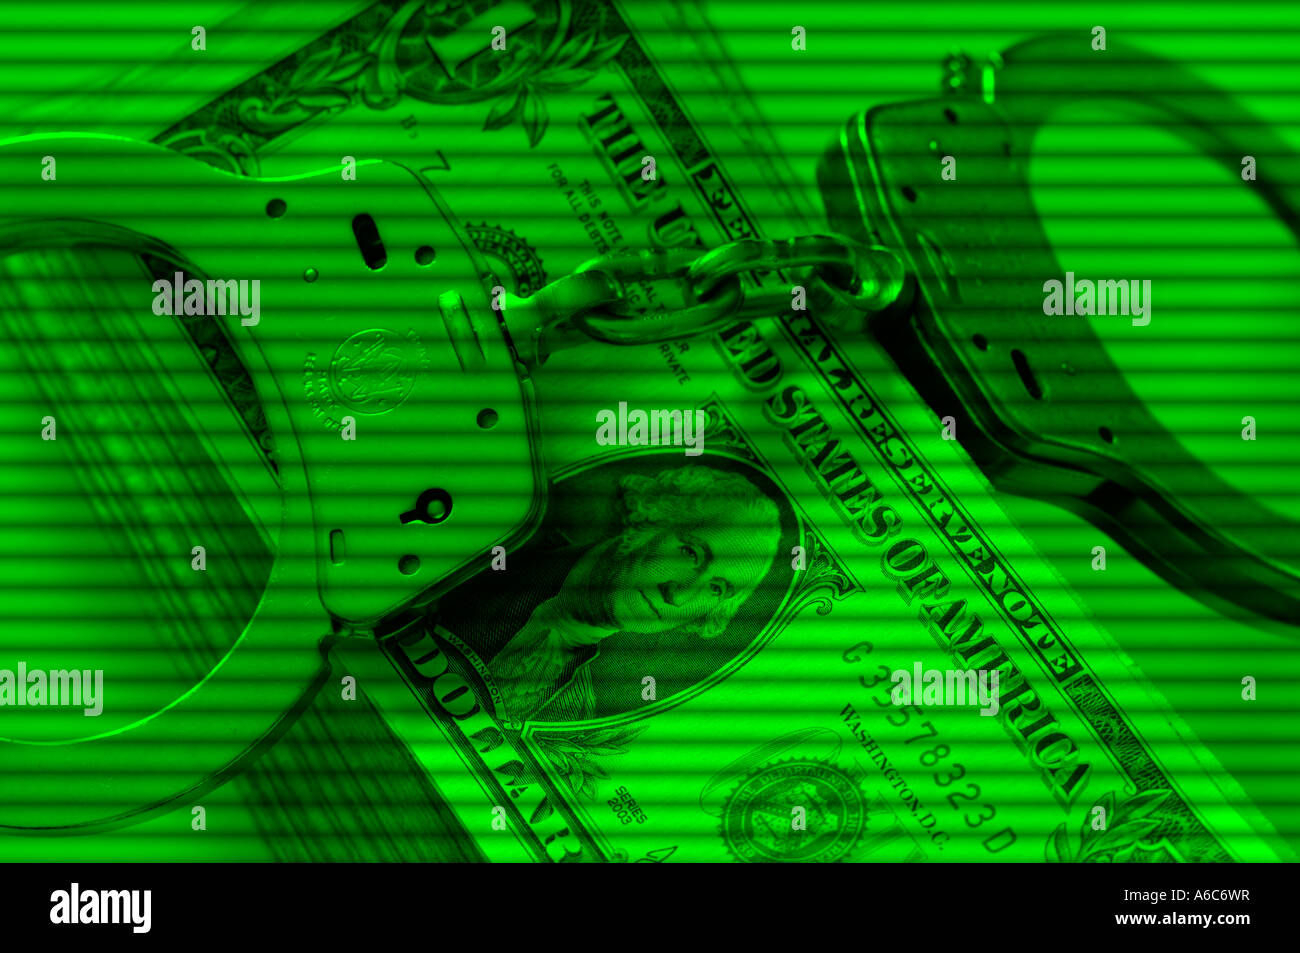 handcuffs and money shown on security camera screen - Stock Image